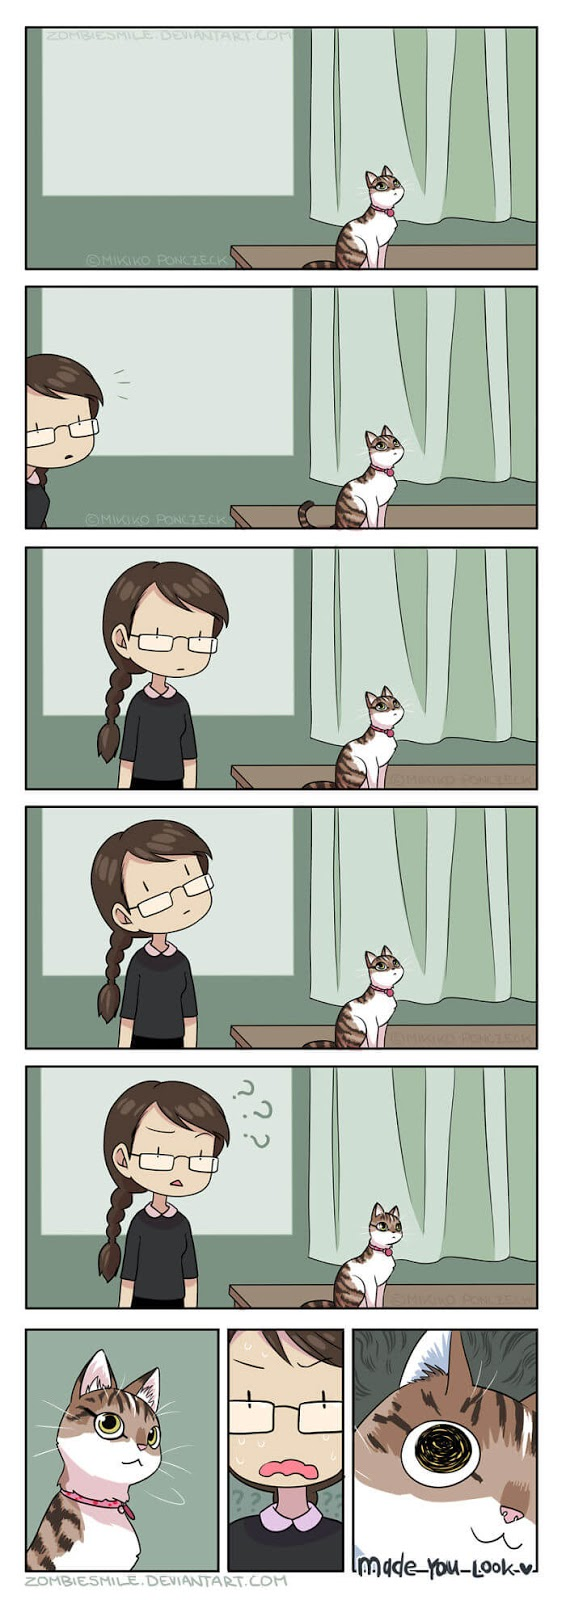 Artist Illustrates Cute Comics About Her Daily Life With Her Partner And Cat